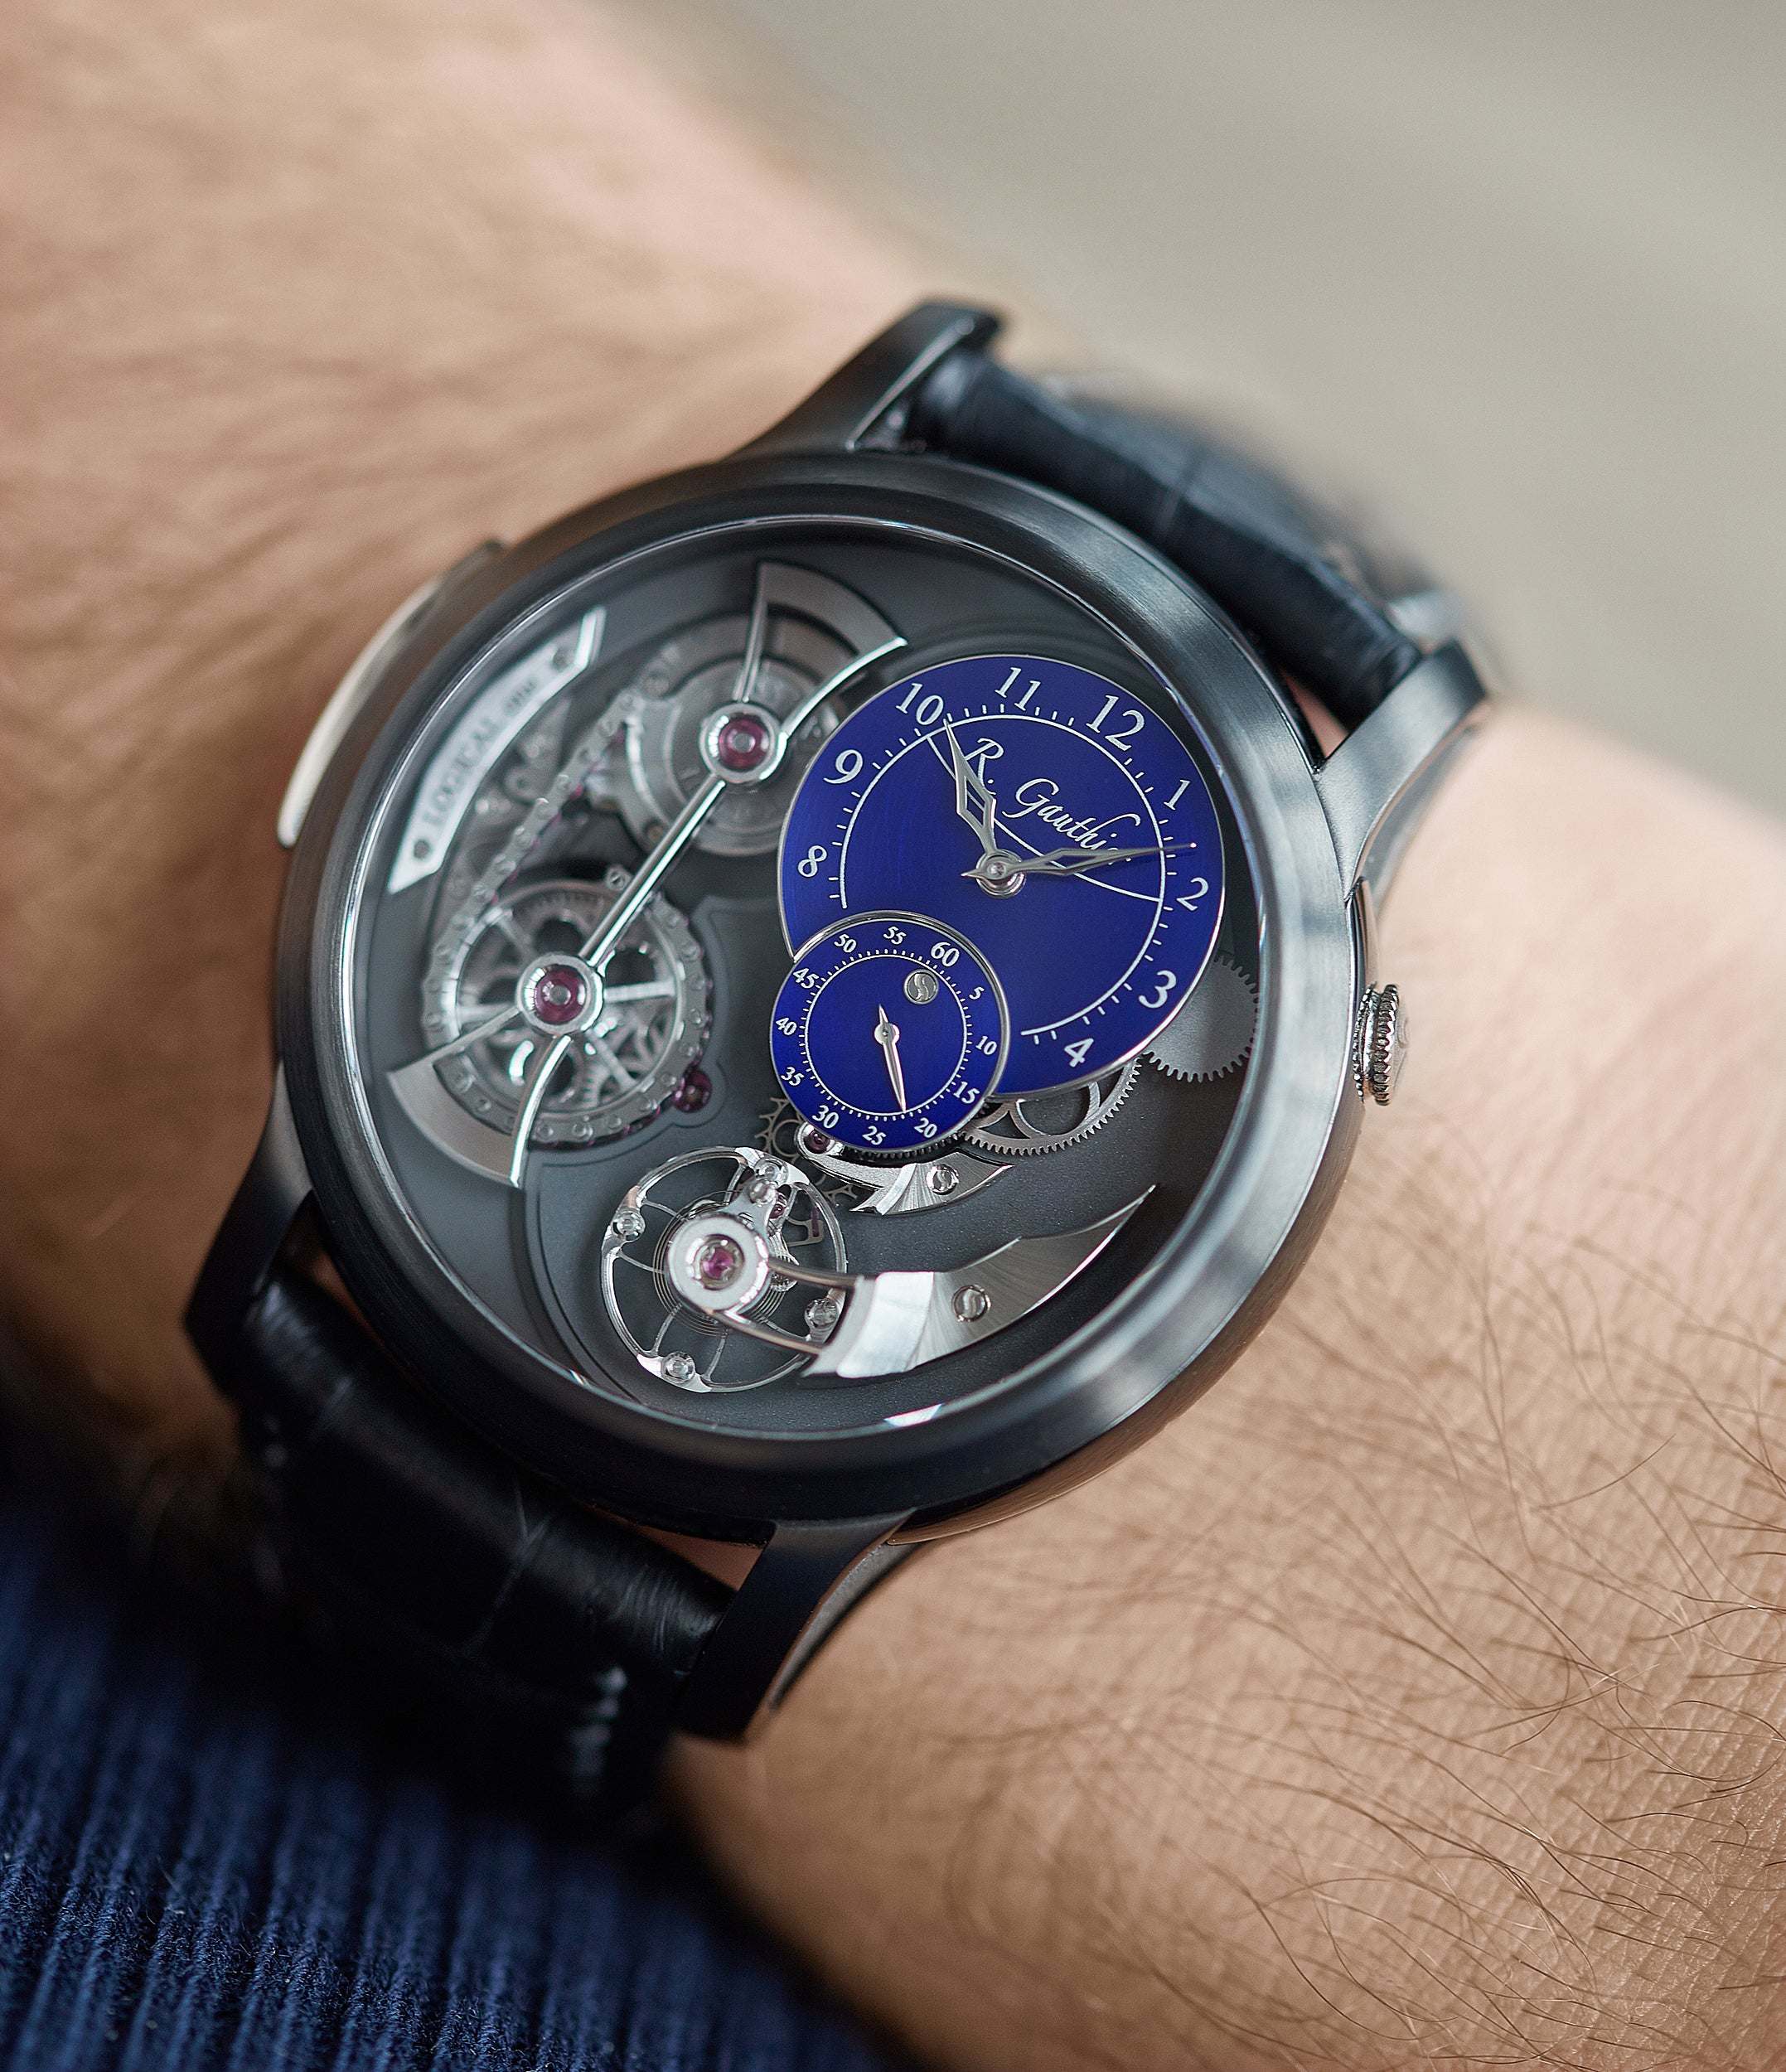 men's rare blue dial wristwatch Romain Gauthier Limited Edition Logical One BTG titanium watch blue enamel dial for sale online at A Collected Man London UK specialist of independent watchmakers